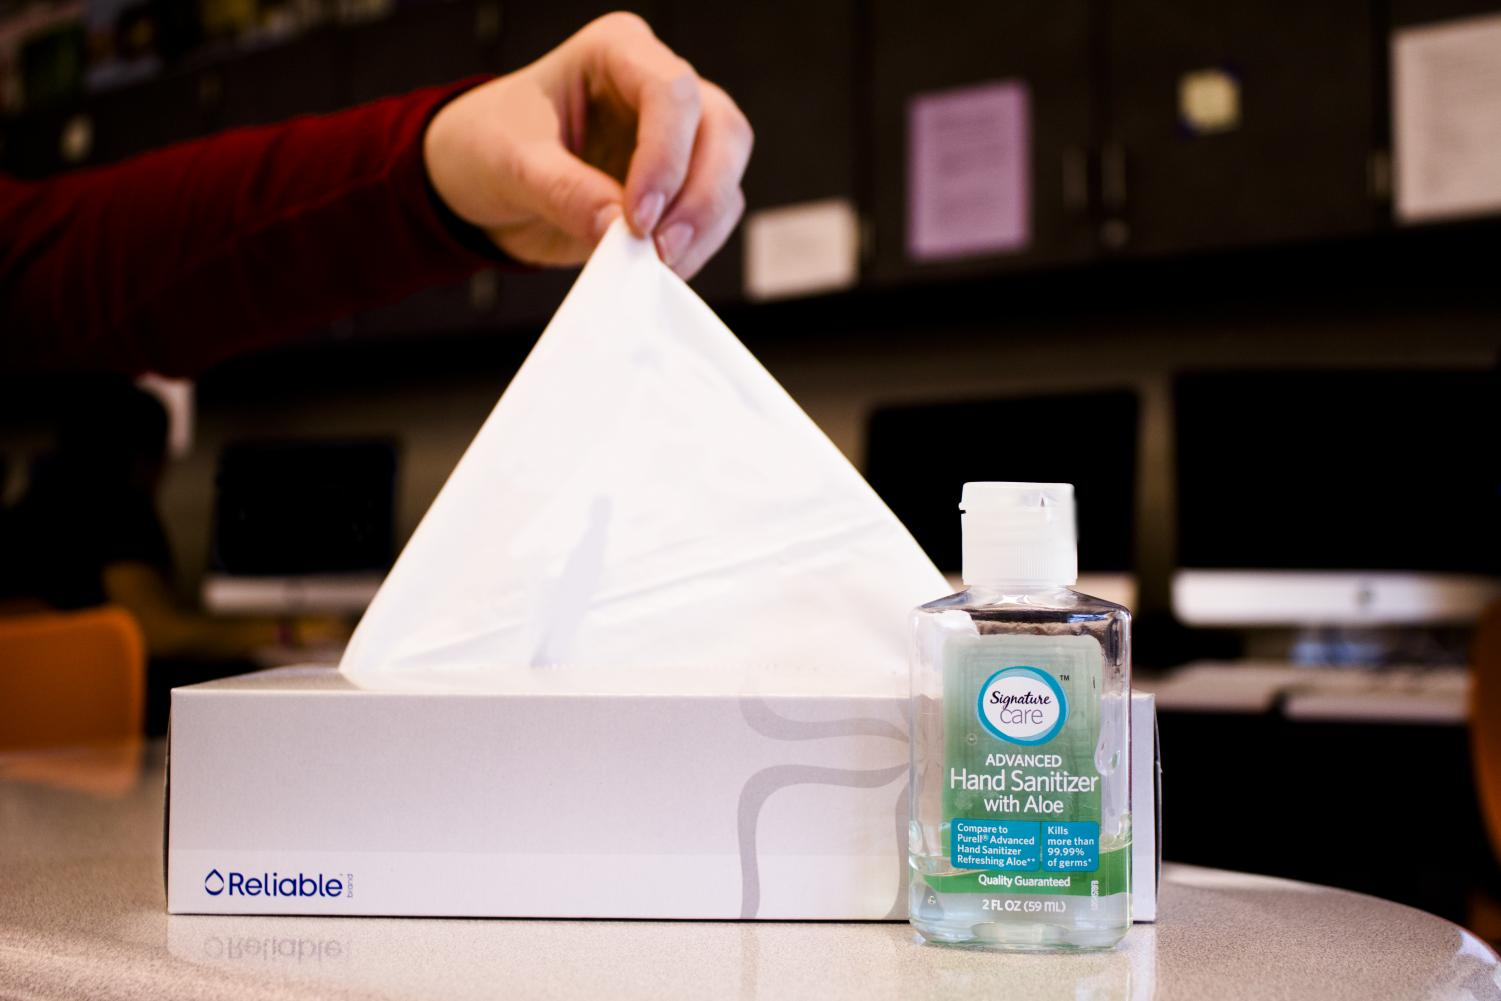 Students reach for tissues and hand sanitizer as flu season approaches.